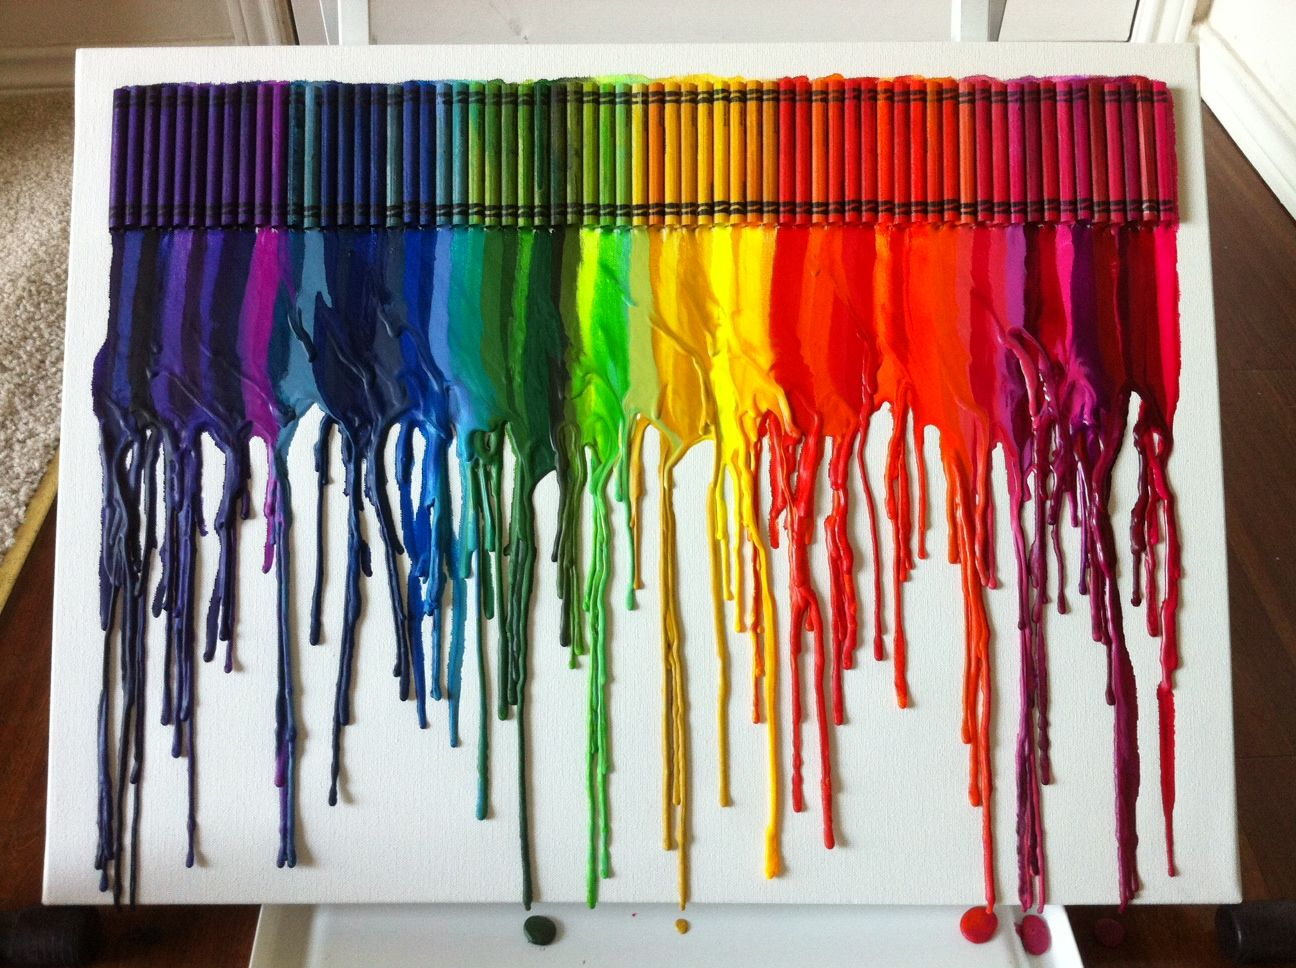 Hair Dryer Or Heat Paint Remover And Crayons Brilliance